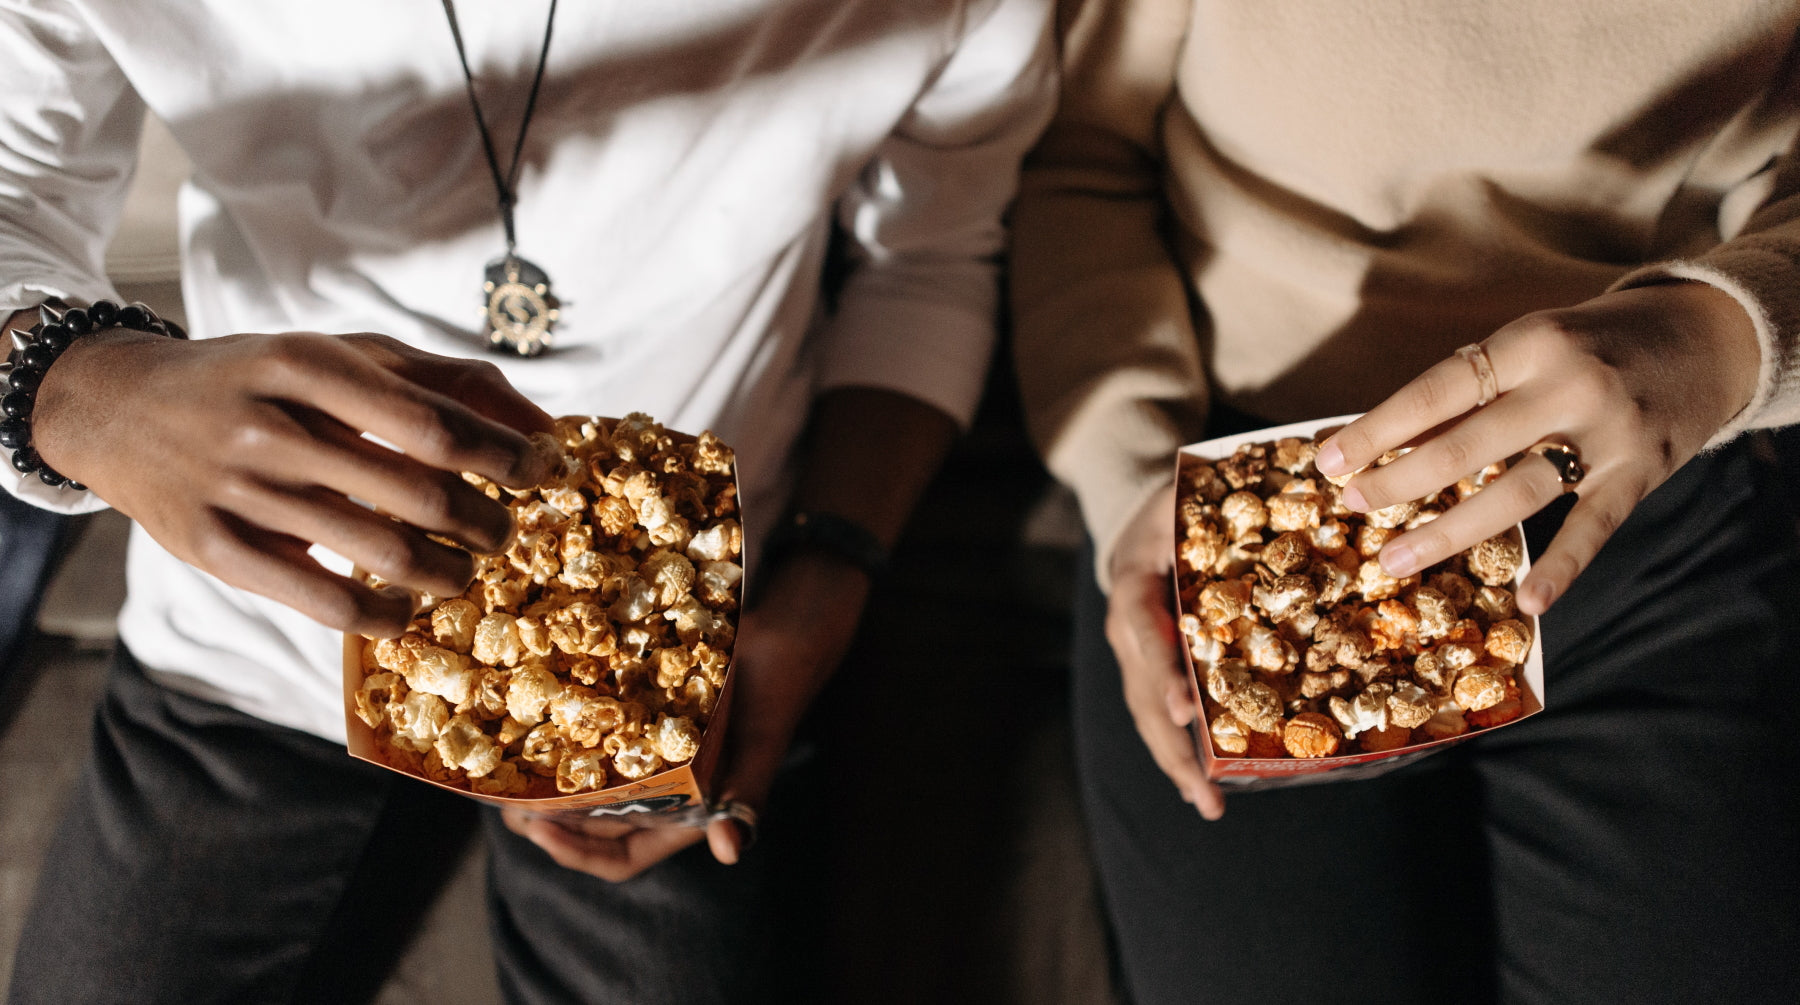 Chocolate Covered Popcorn with Sea Salt